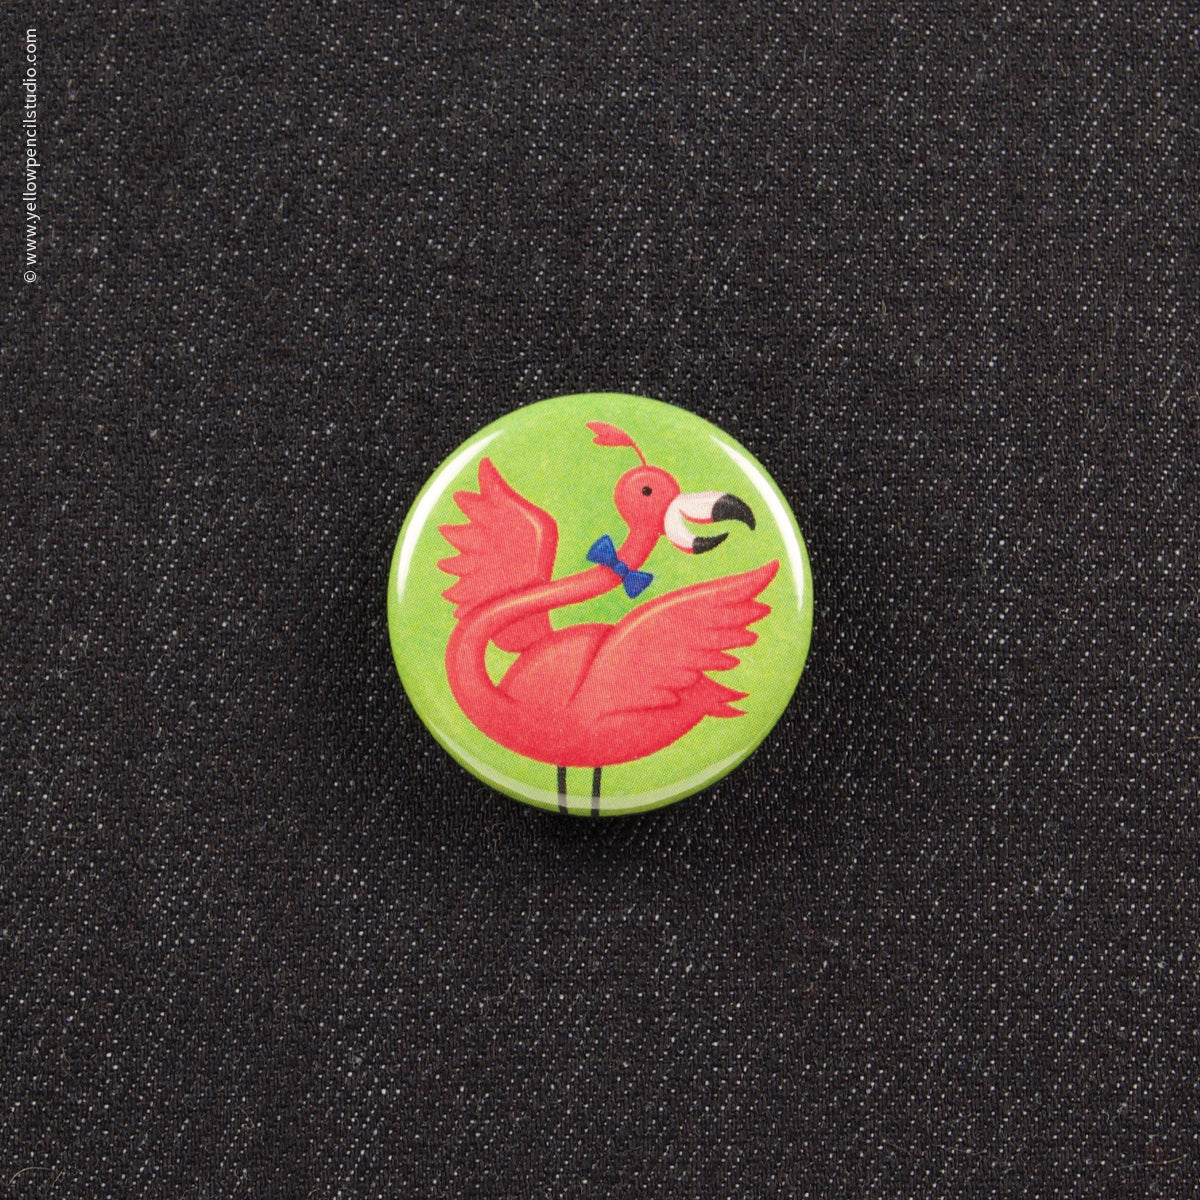 Flamingo Button - Yellow Pencil Studio